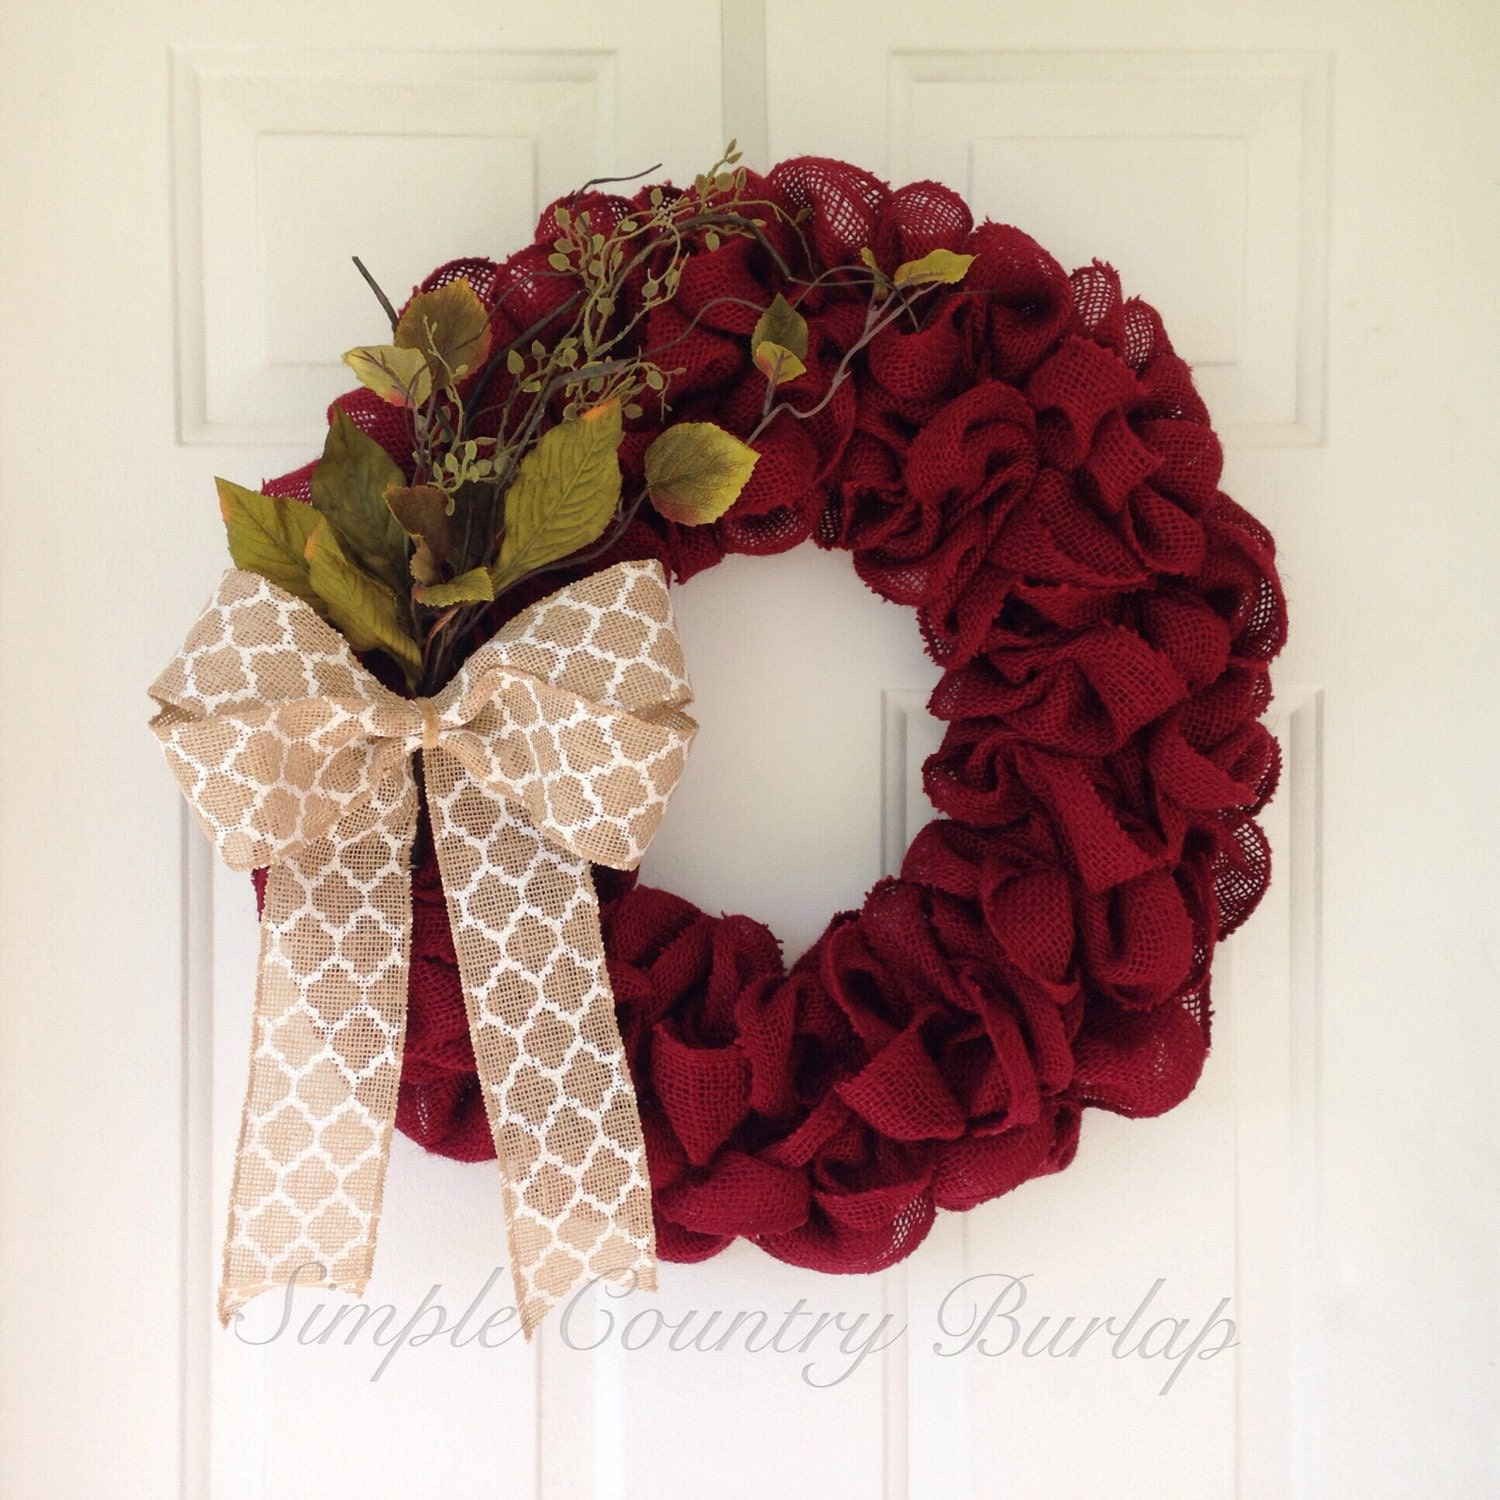 Burgundy rustic christmas burlap wreath by simplecountryburlap Burlap xmas wreath